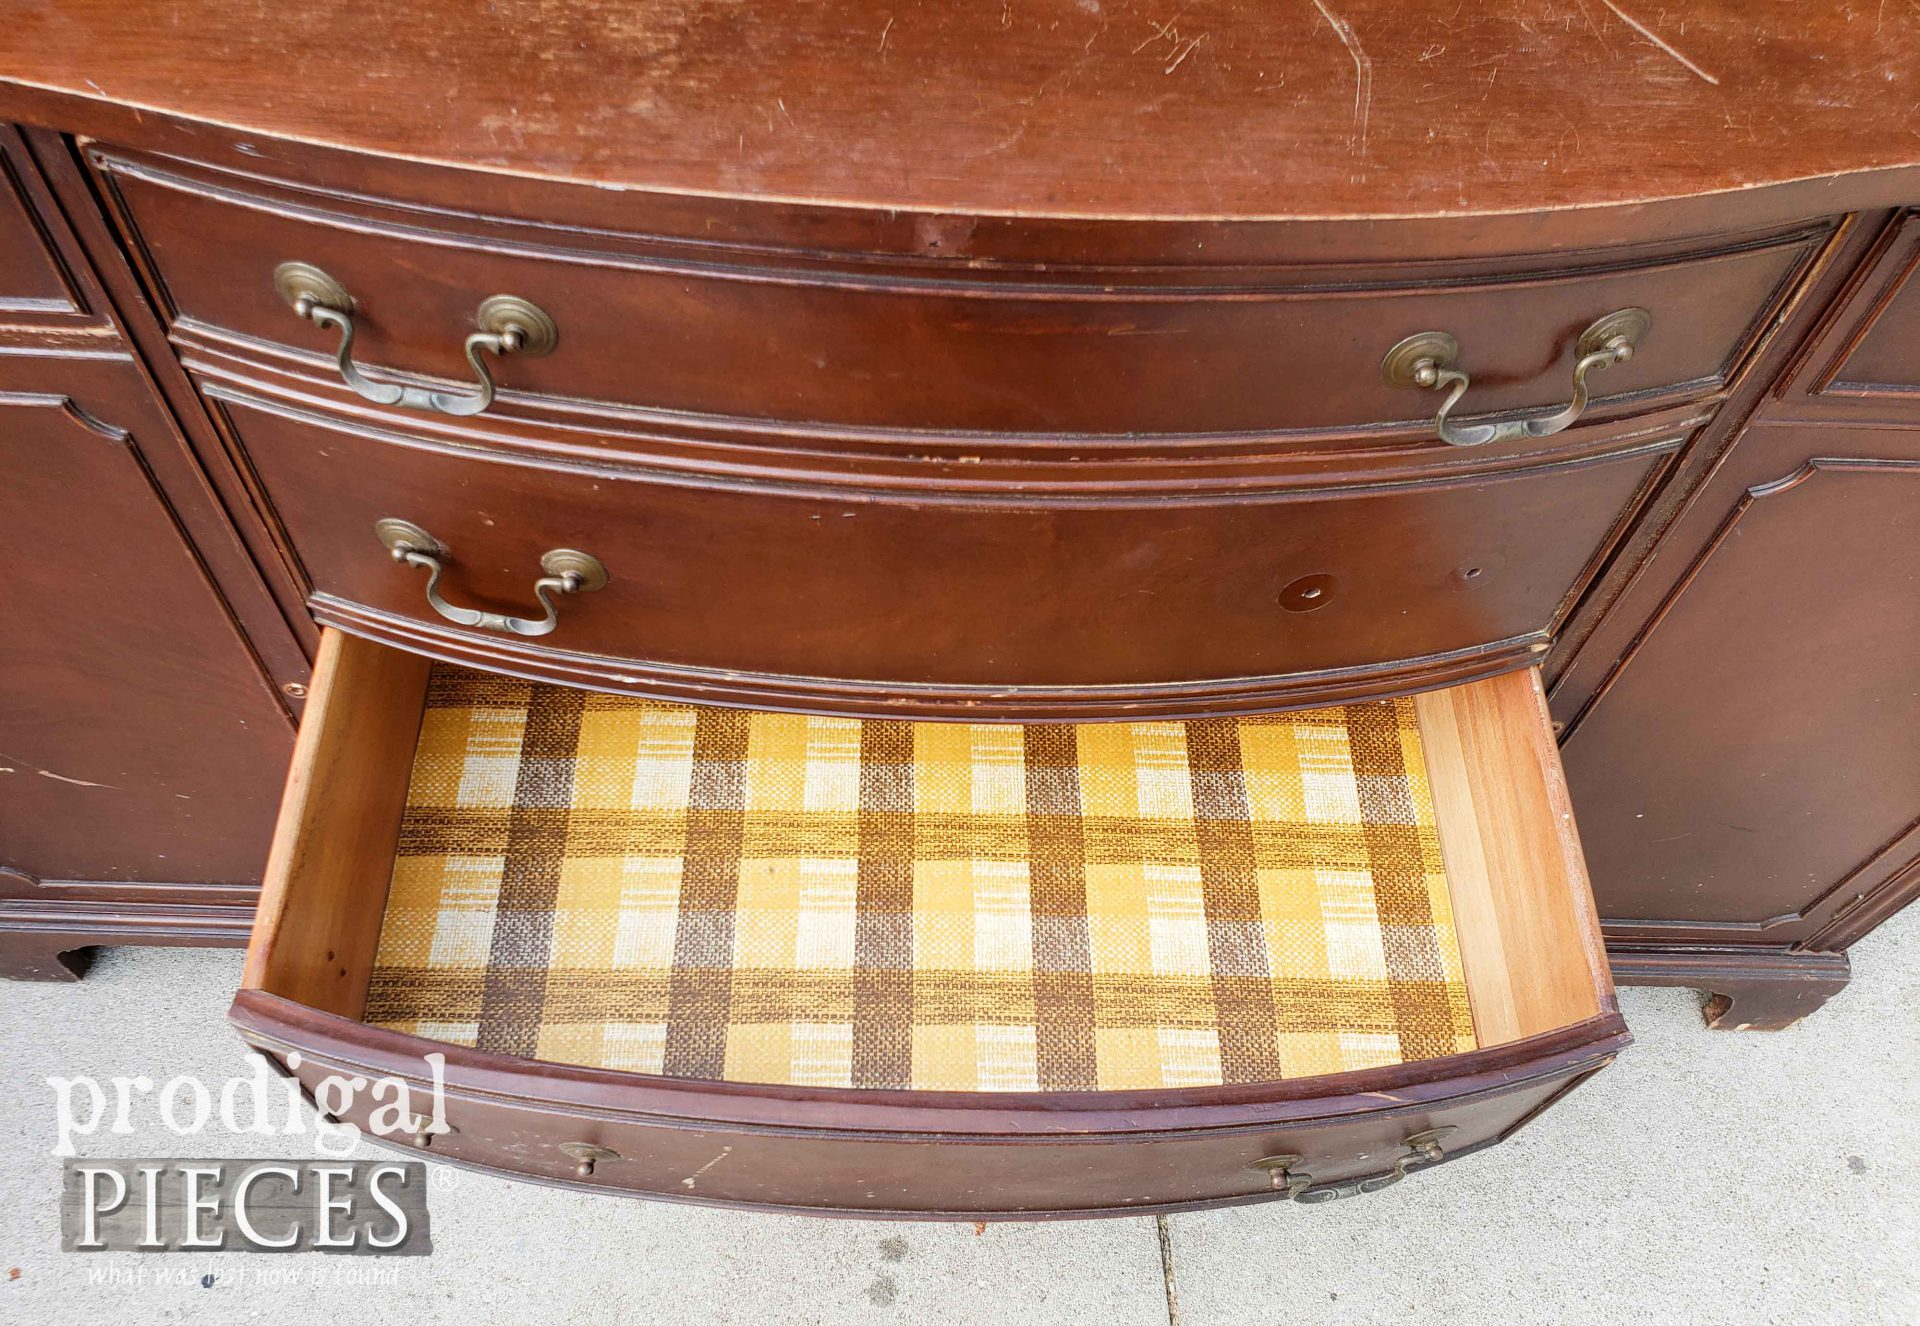 Vintage Buffet with Paper-Lined Open Drawer | prodigalpieces.com